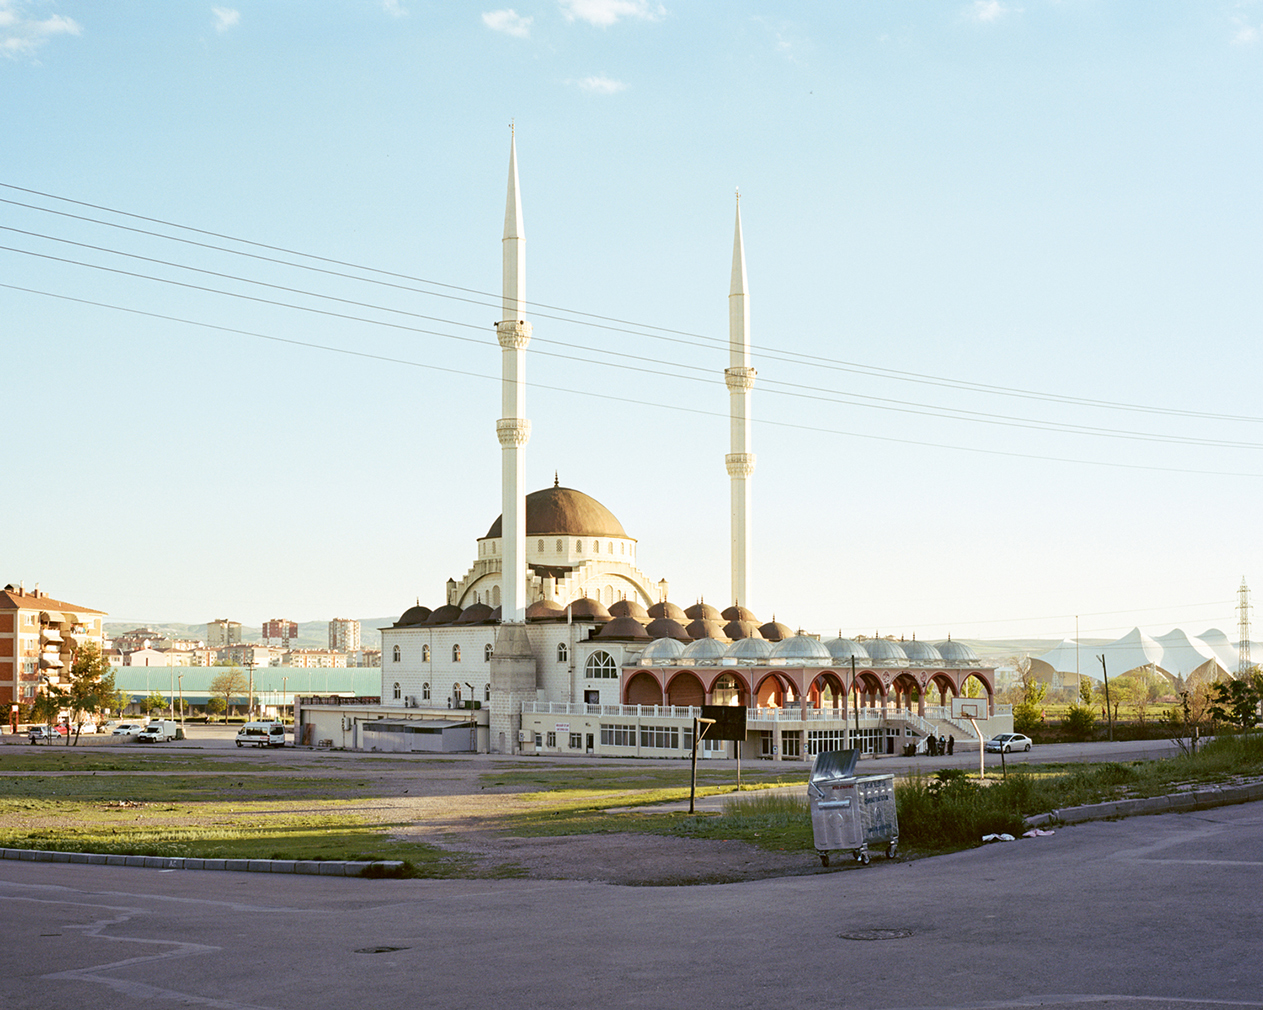 Turkey's mega mosques, photographed by Norman Behrendt